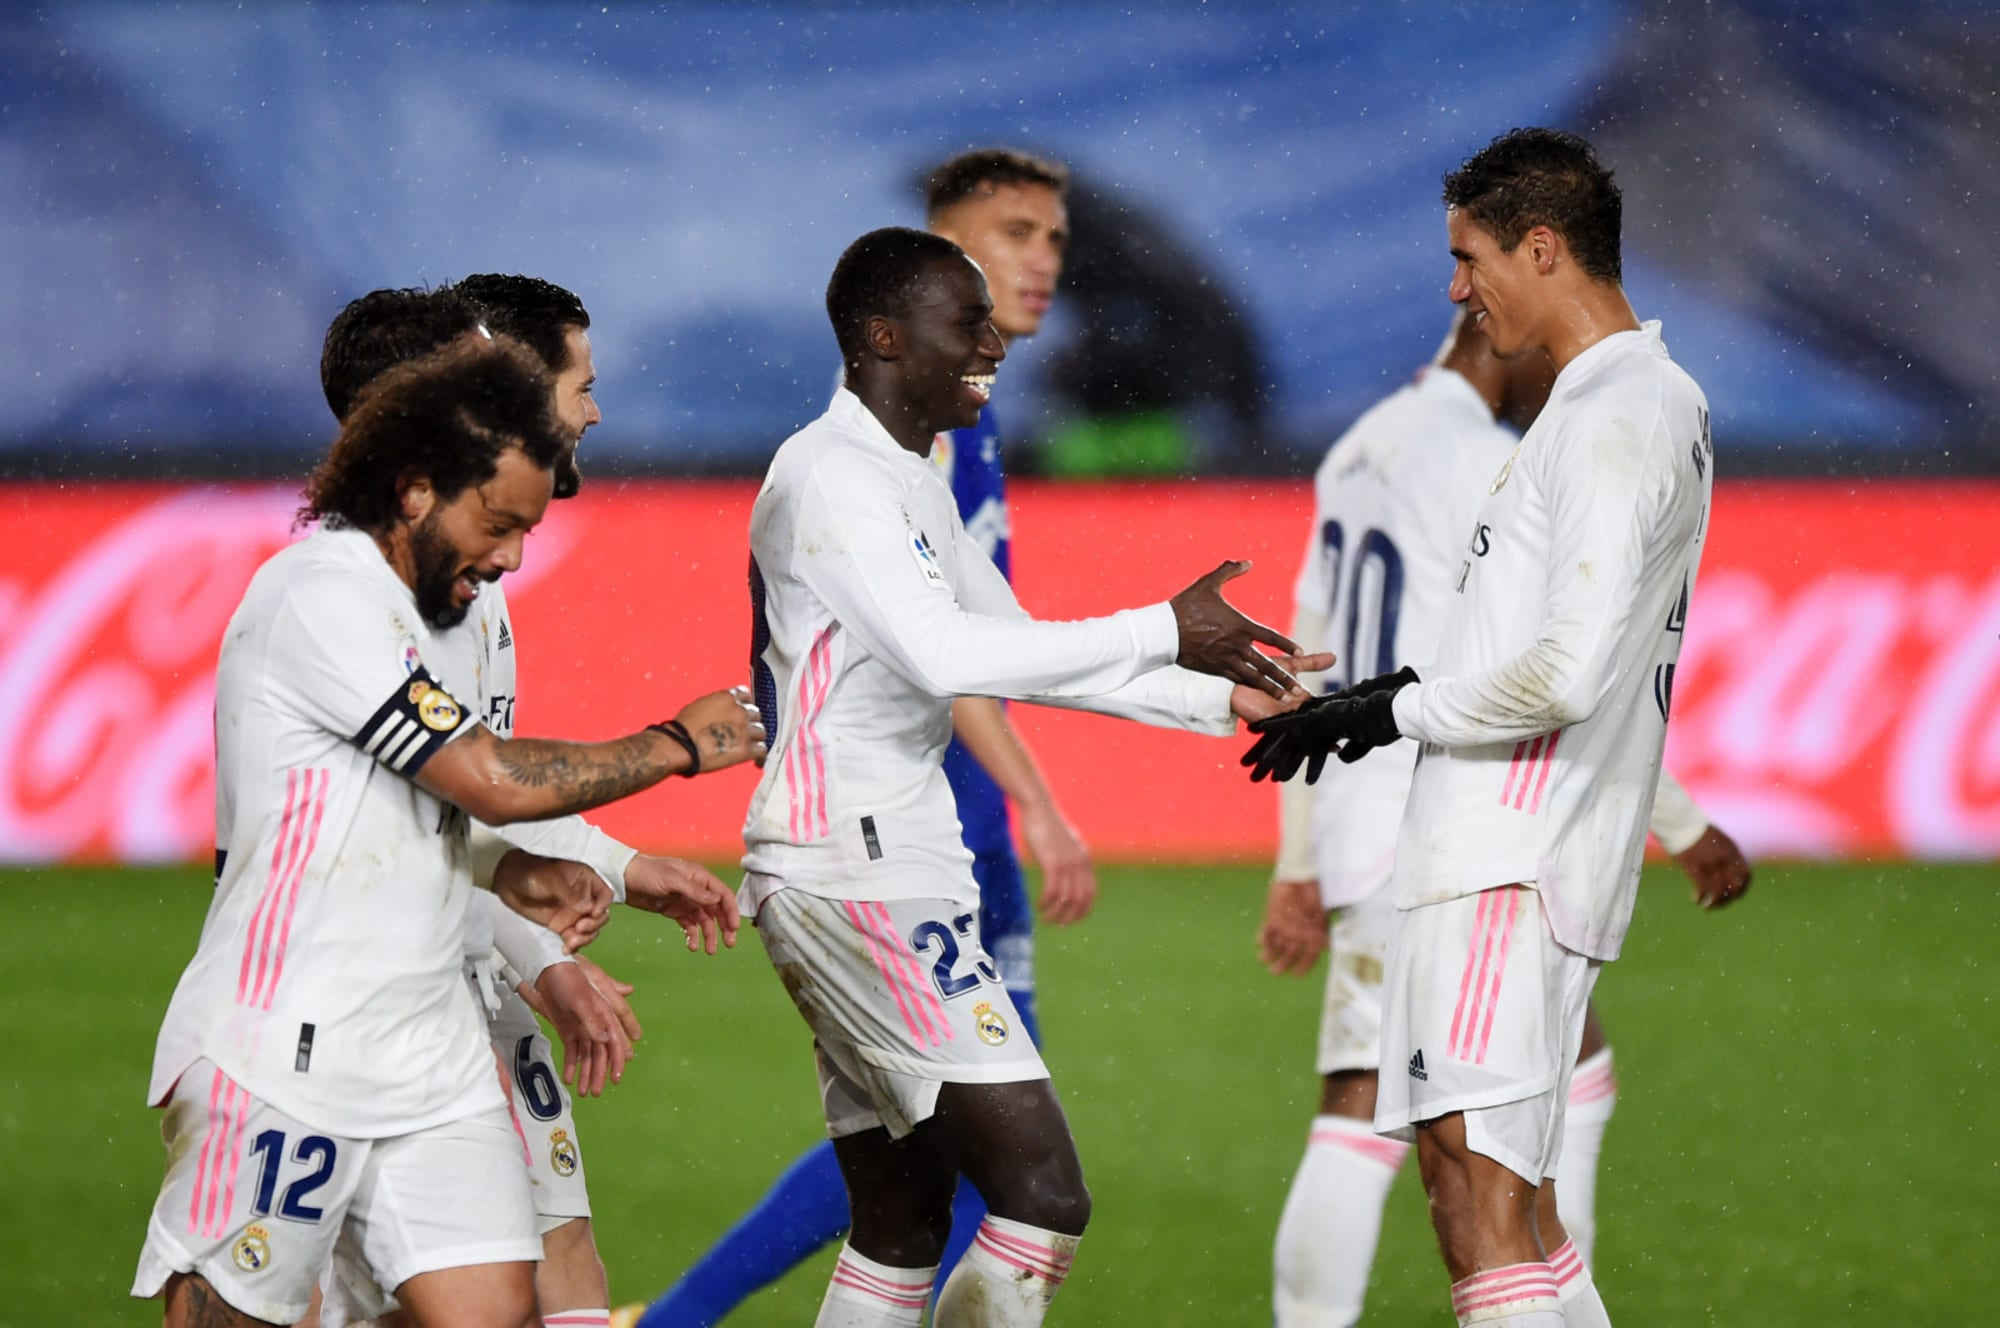 Real Madrid: Player Ratings from the 2-0 win against Getafe - The Real Champs